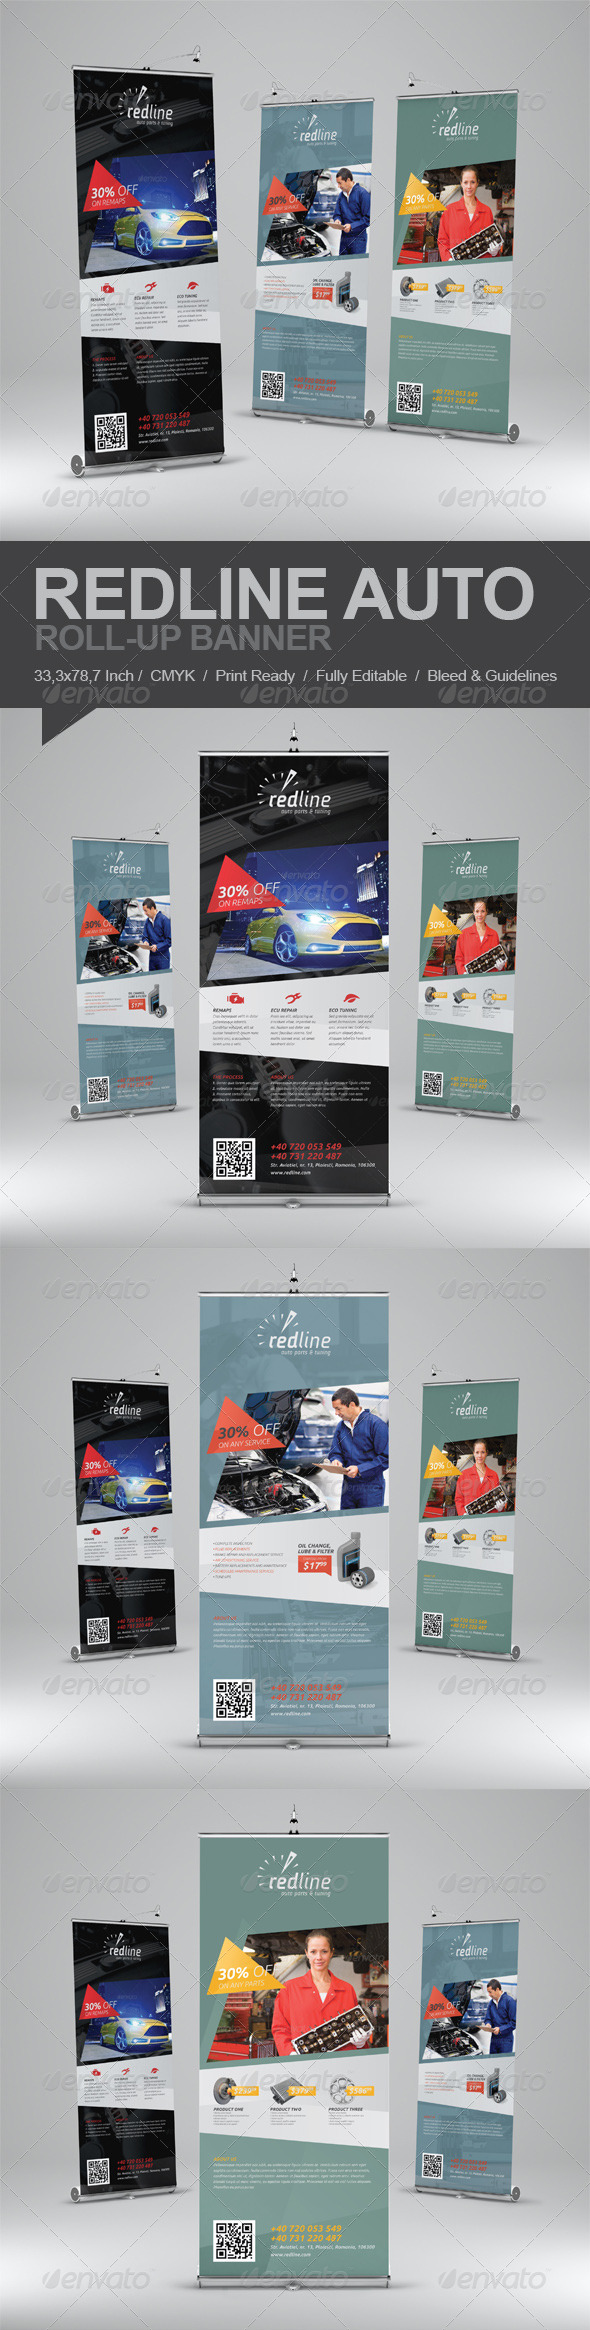 GraphicRiver Redline Auto Roll-Up Banner 5739342